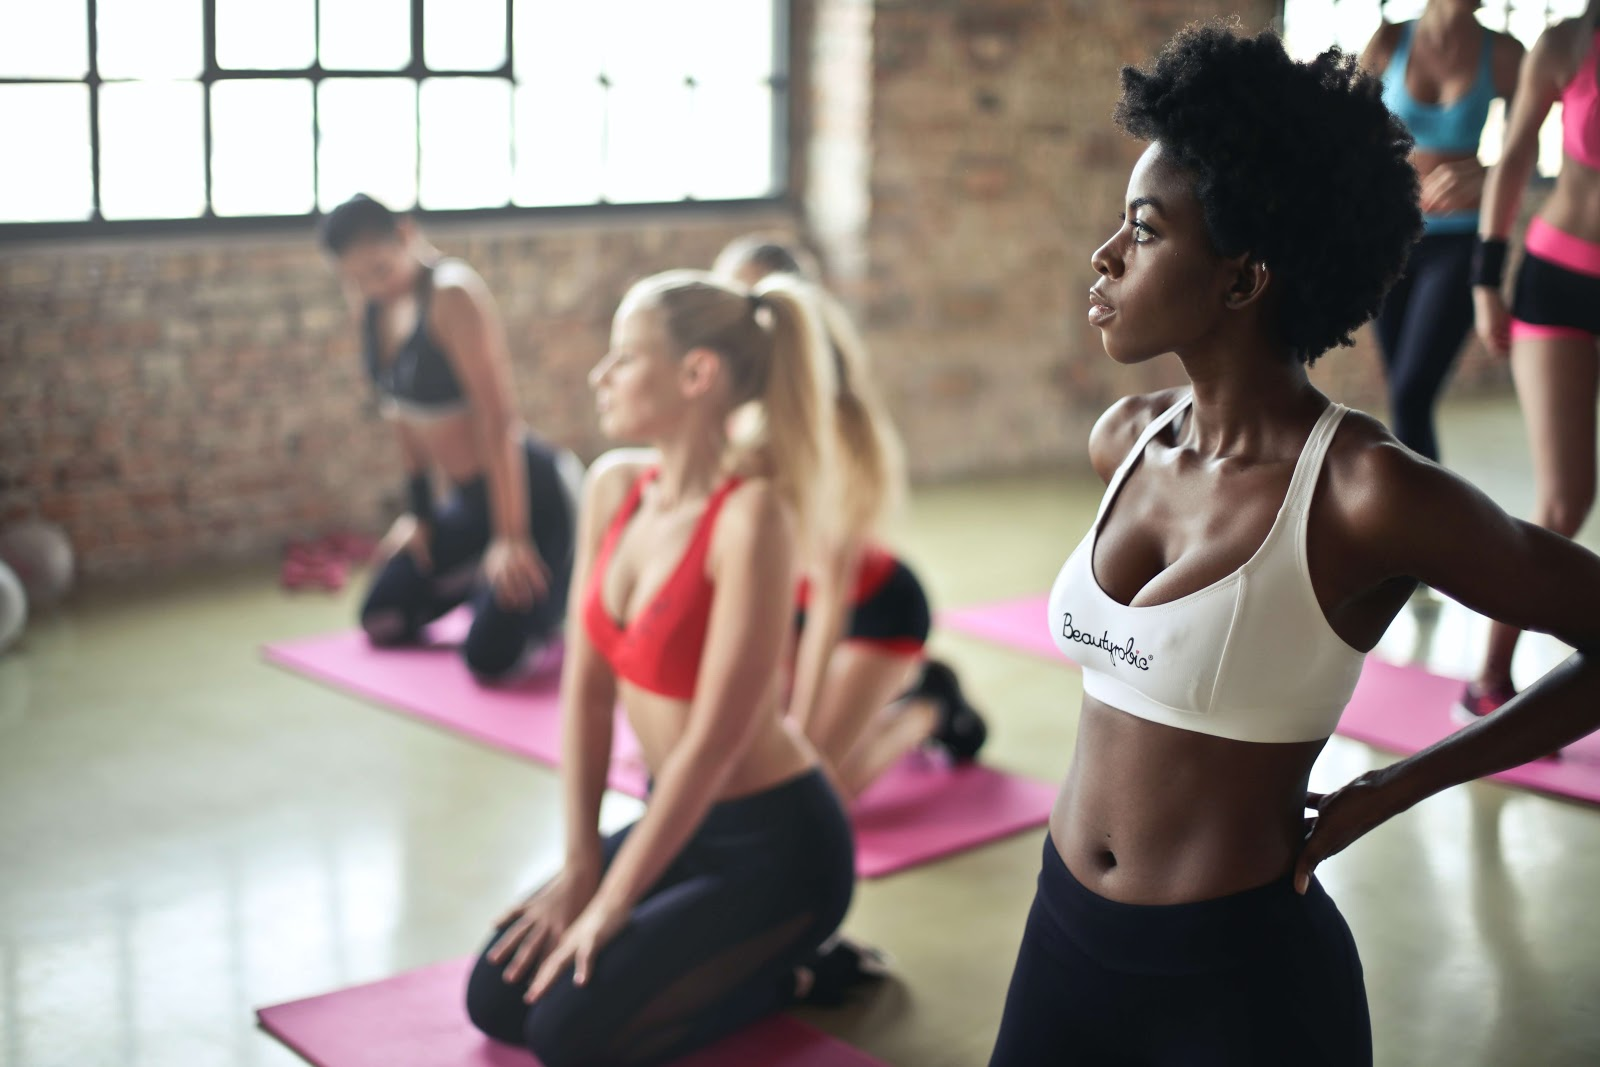 Women sitting on yoga mats during a fitness class, taking care of their physical health during their fertility journey.r